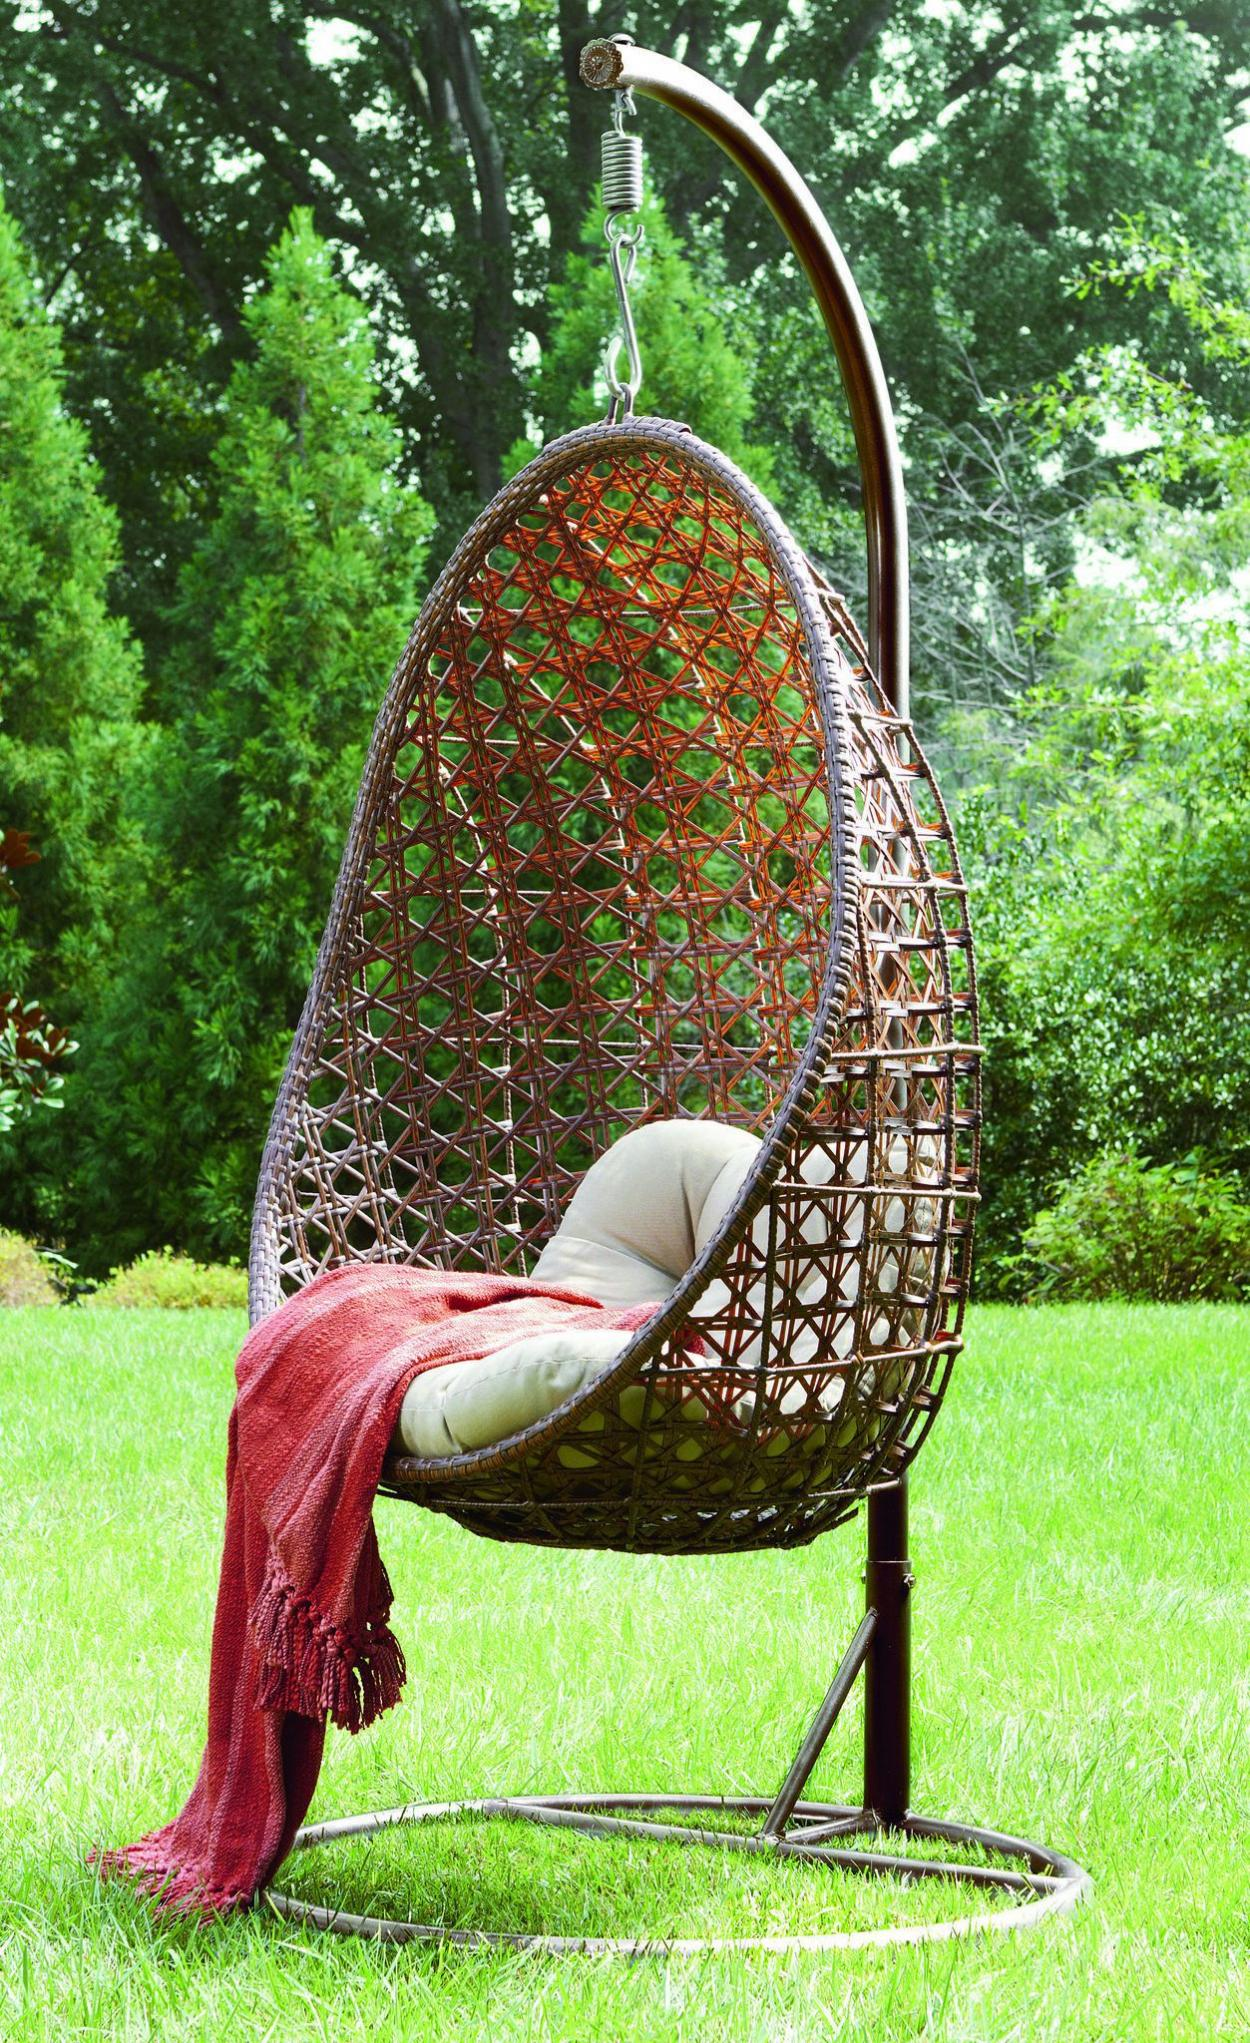 hanging lawn chair ergonomic living room chairs make the days feel comfortable and relaxed with adorable